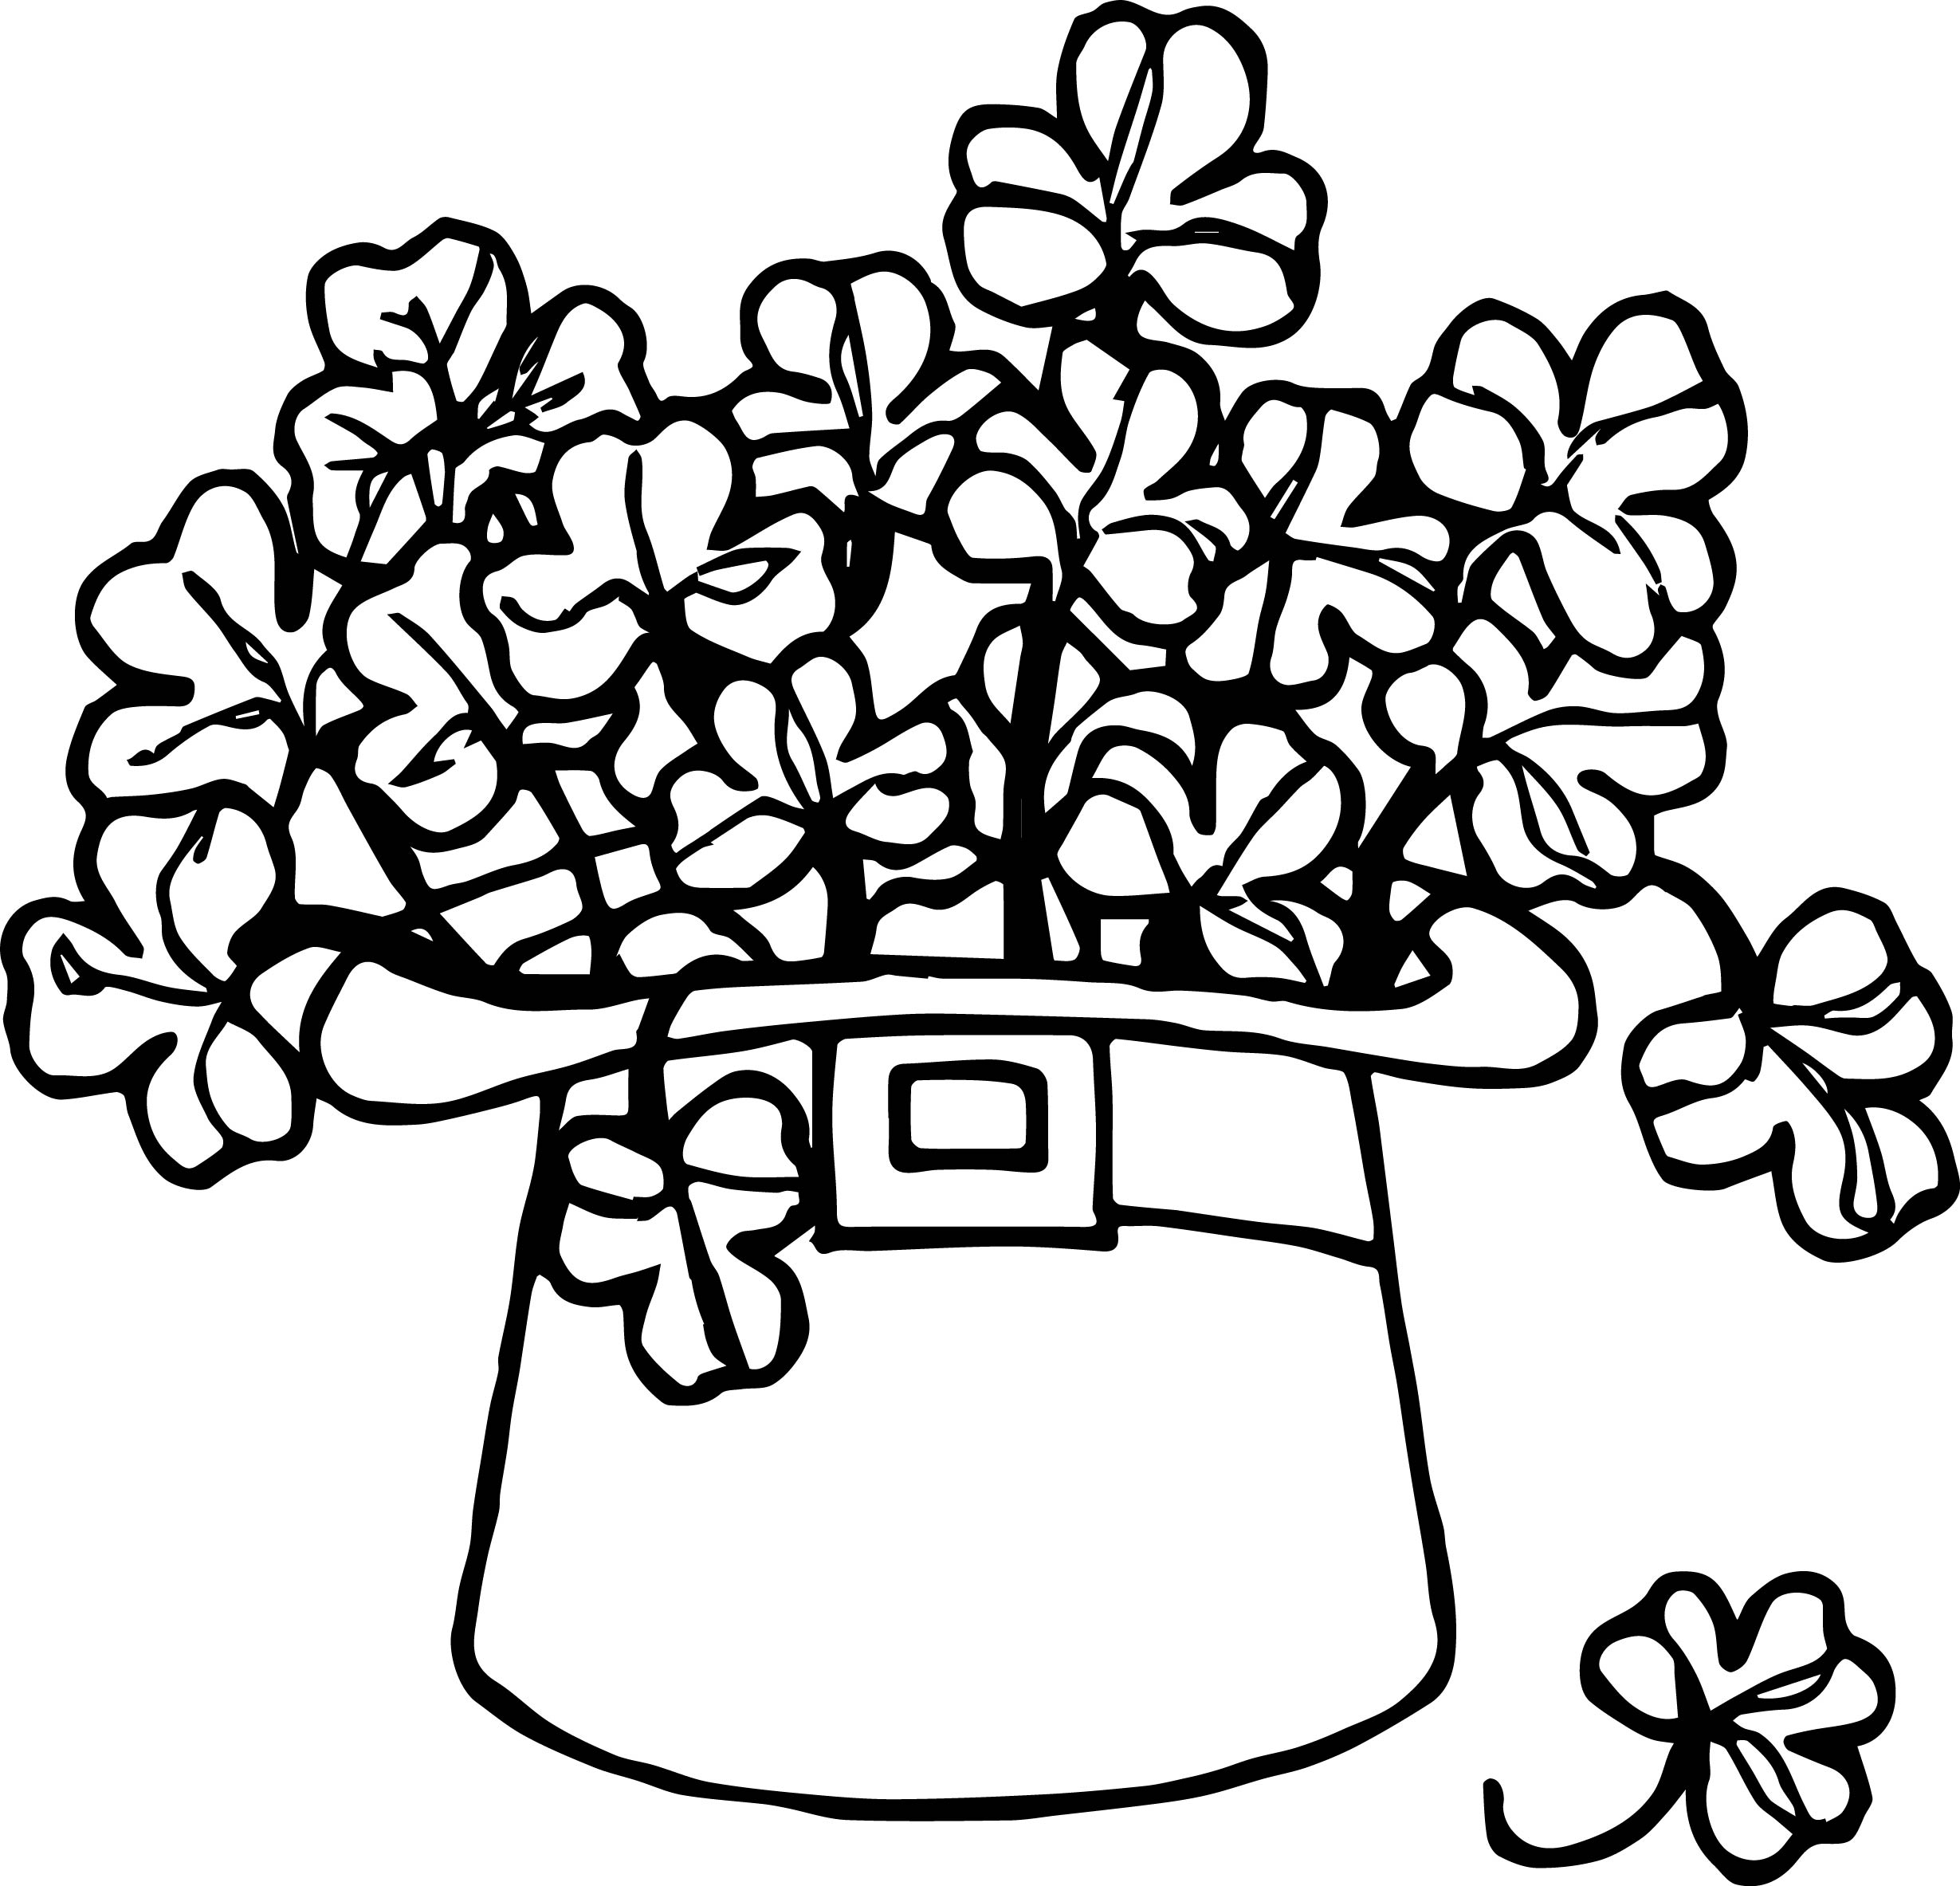 All Saint Day Hat Flower Coloring Page